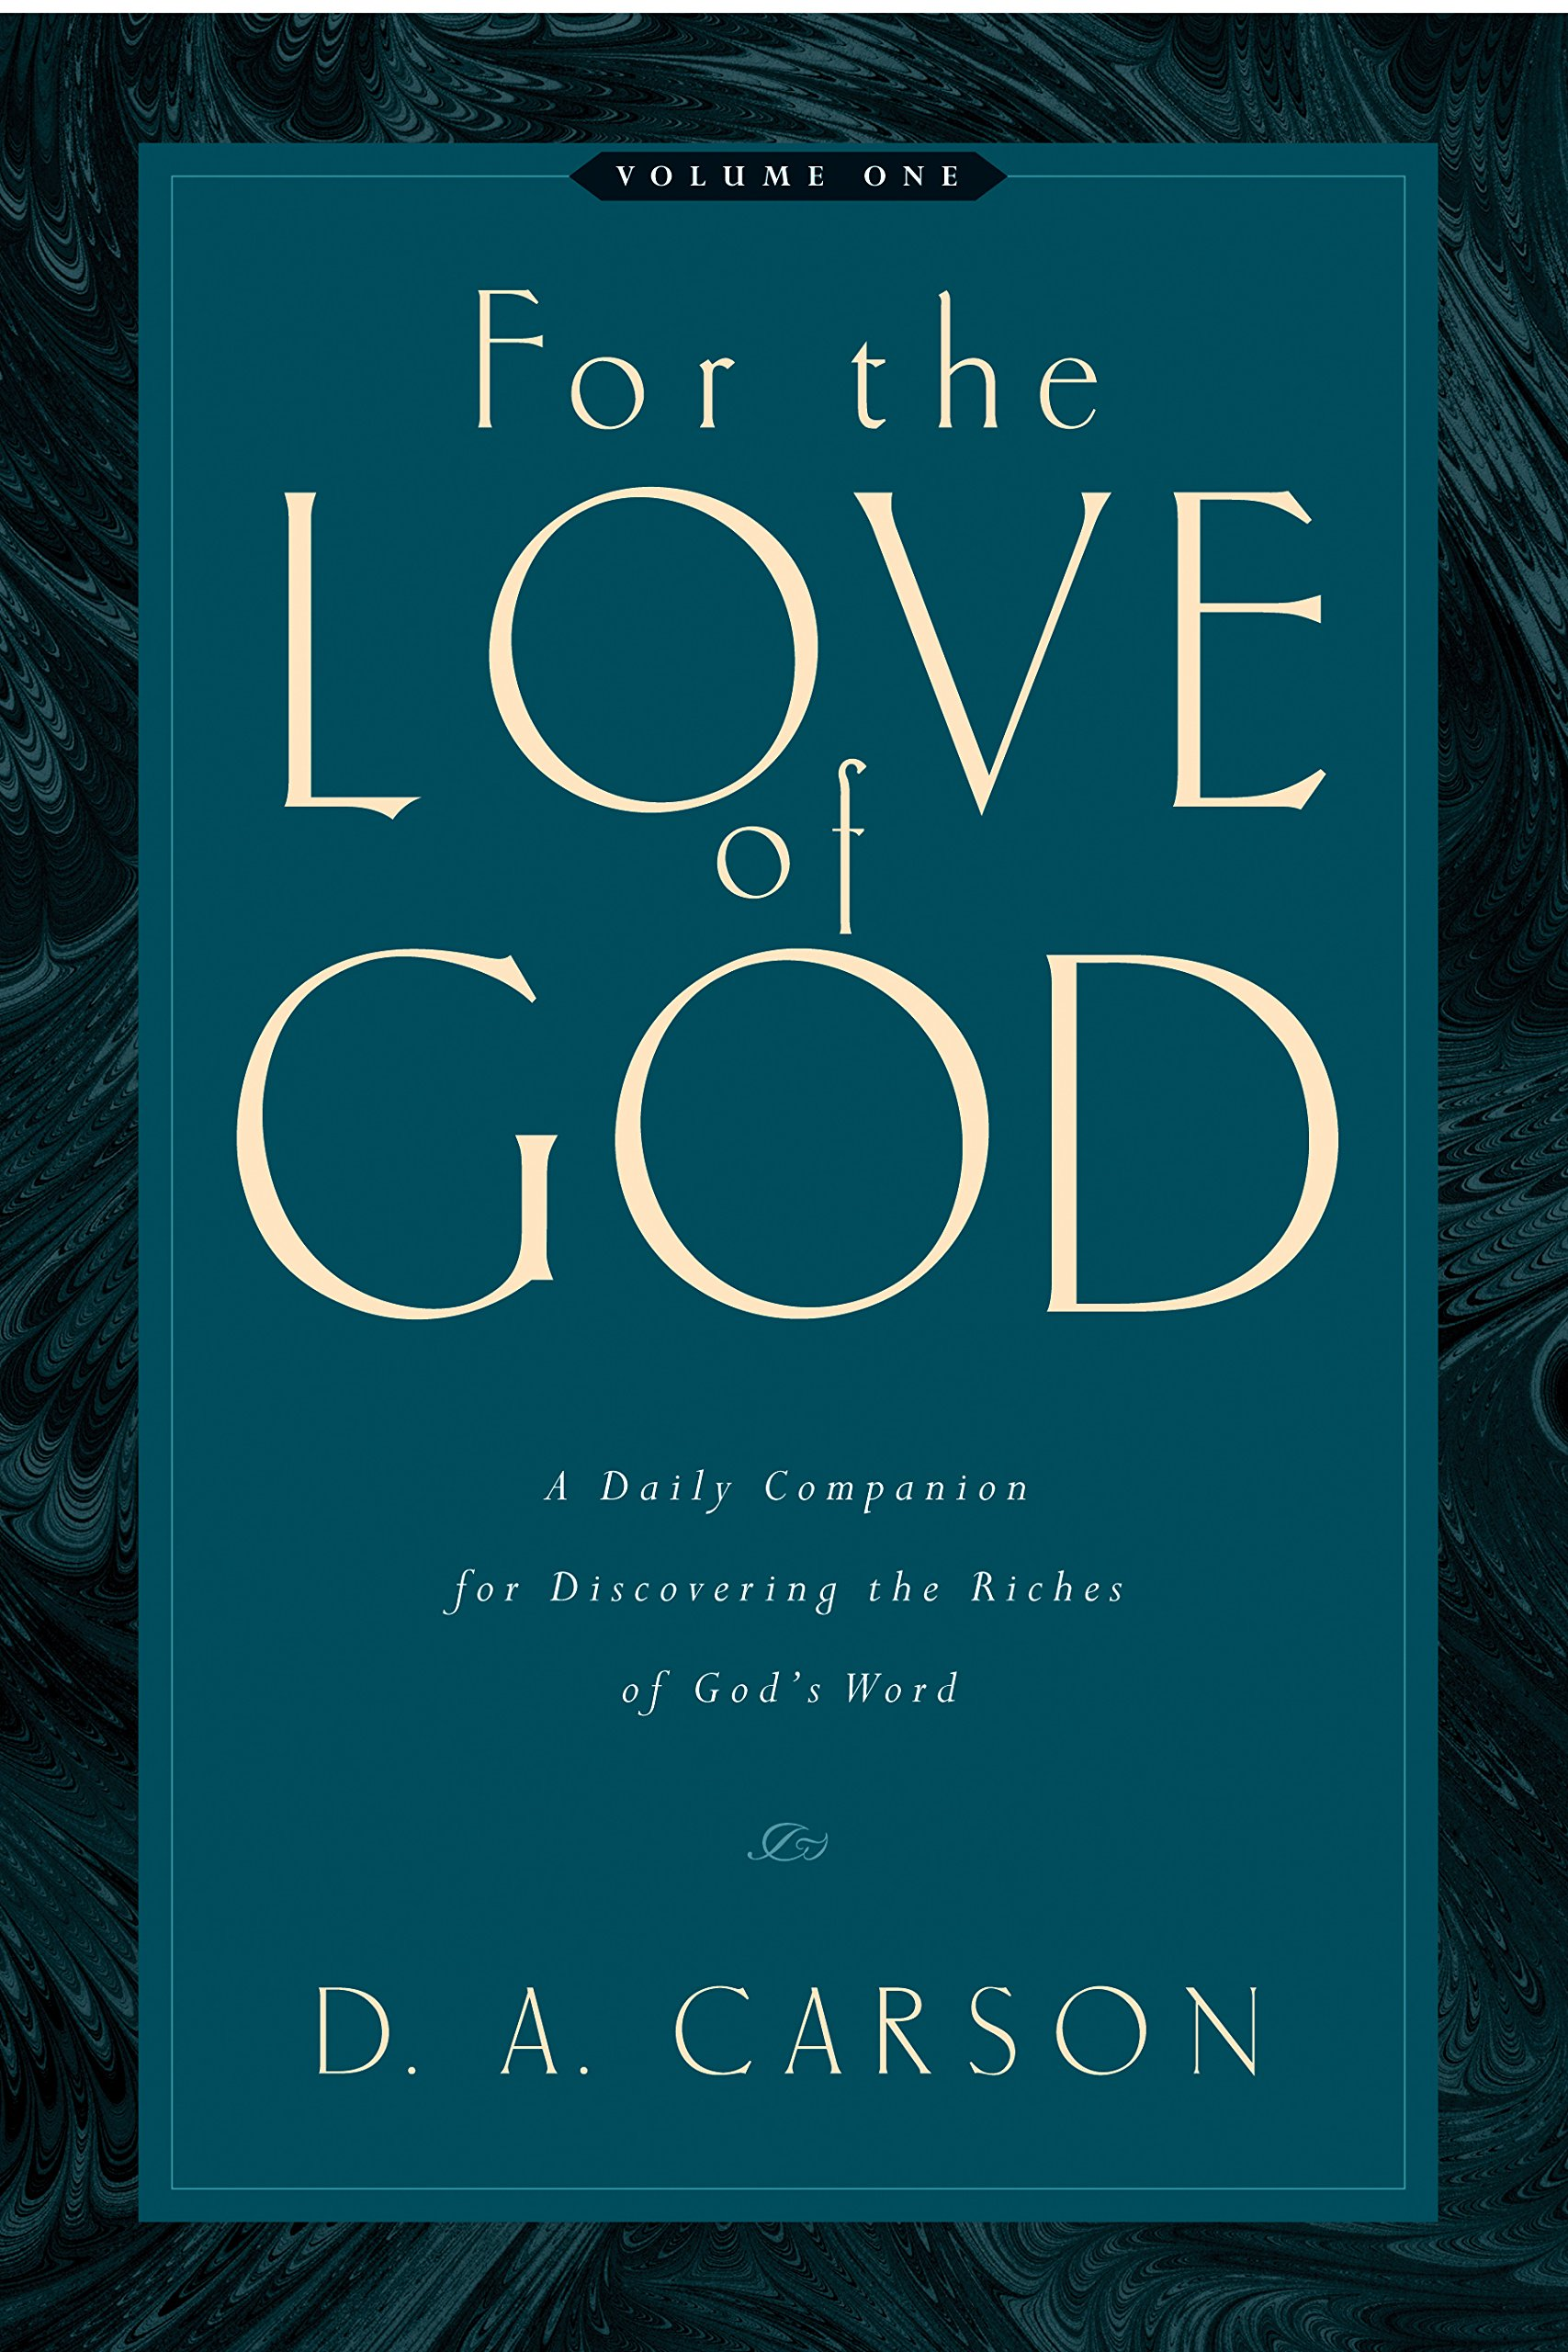 For The Love Of A Daily Companion For Discovering The Riches Ofs Word Amazon De D A Carson Fremdsprachige Bucher